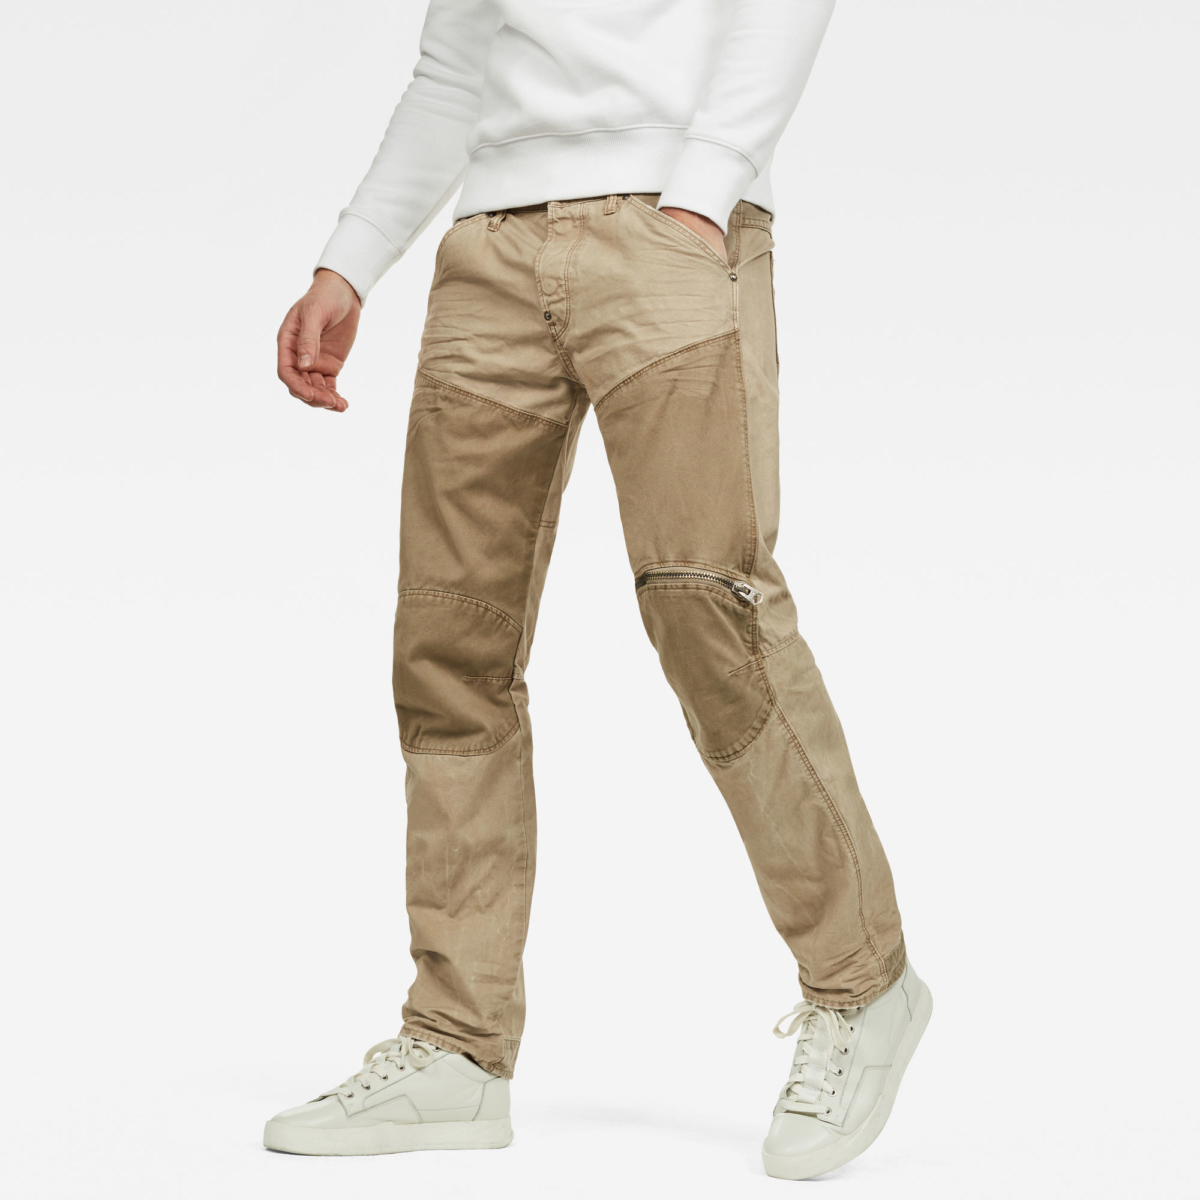 G-Star Male 5620 Workwear 3d Straight Trousers Pants Straight Beige USA - GOOFASH - Mens TROUSERS